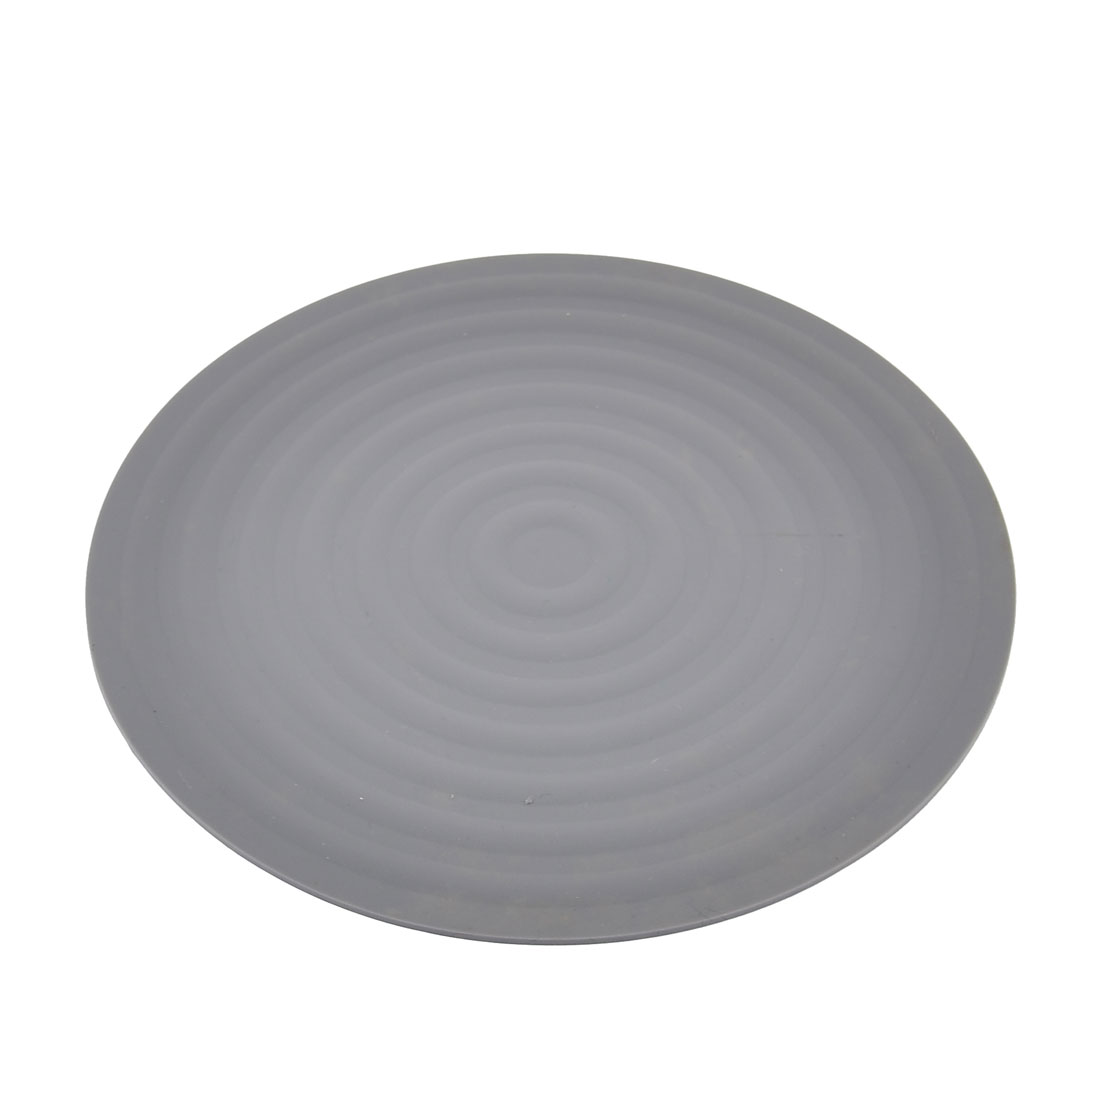 kitchen Rubber Round Shaped Nonslip Heat Resistant Pot Mat Pad Holder Gray